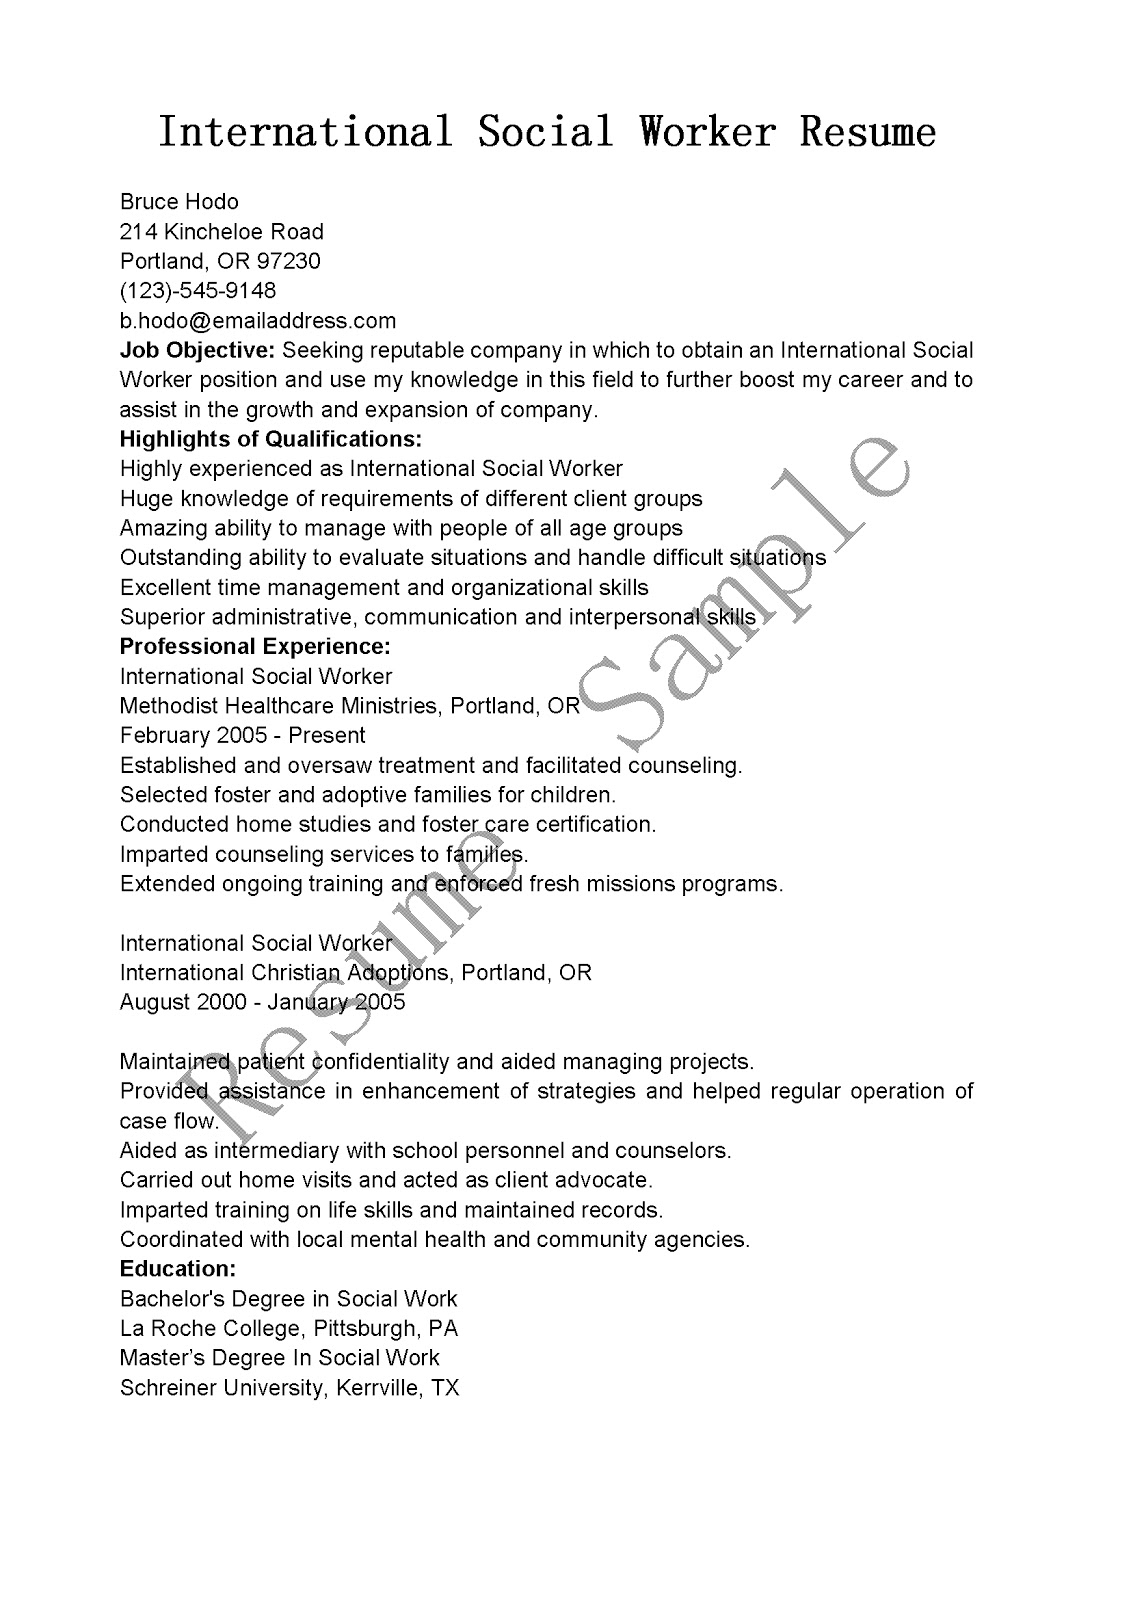 resume samples international social worker resume sample